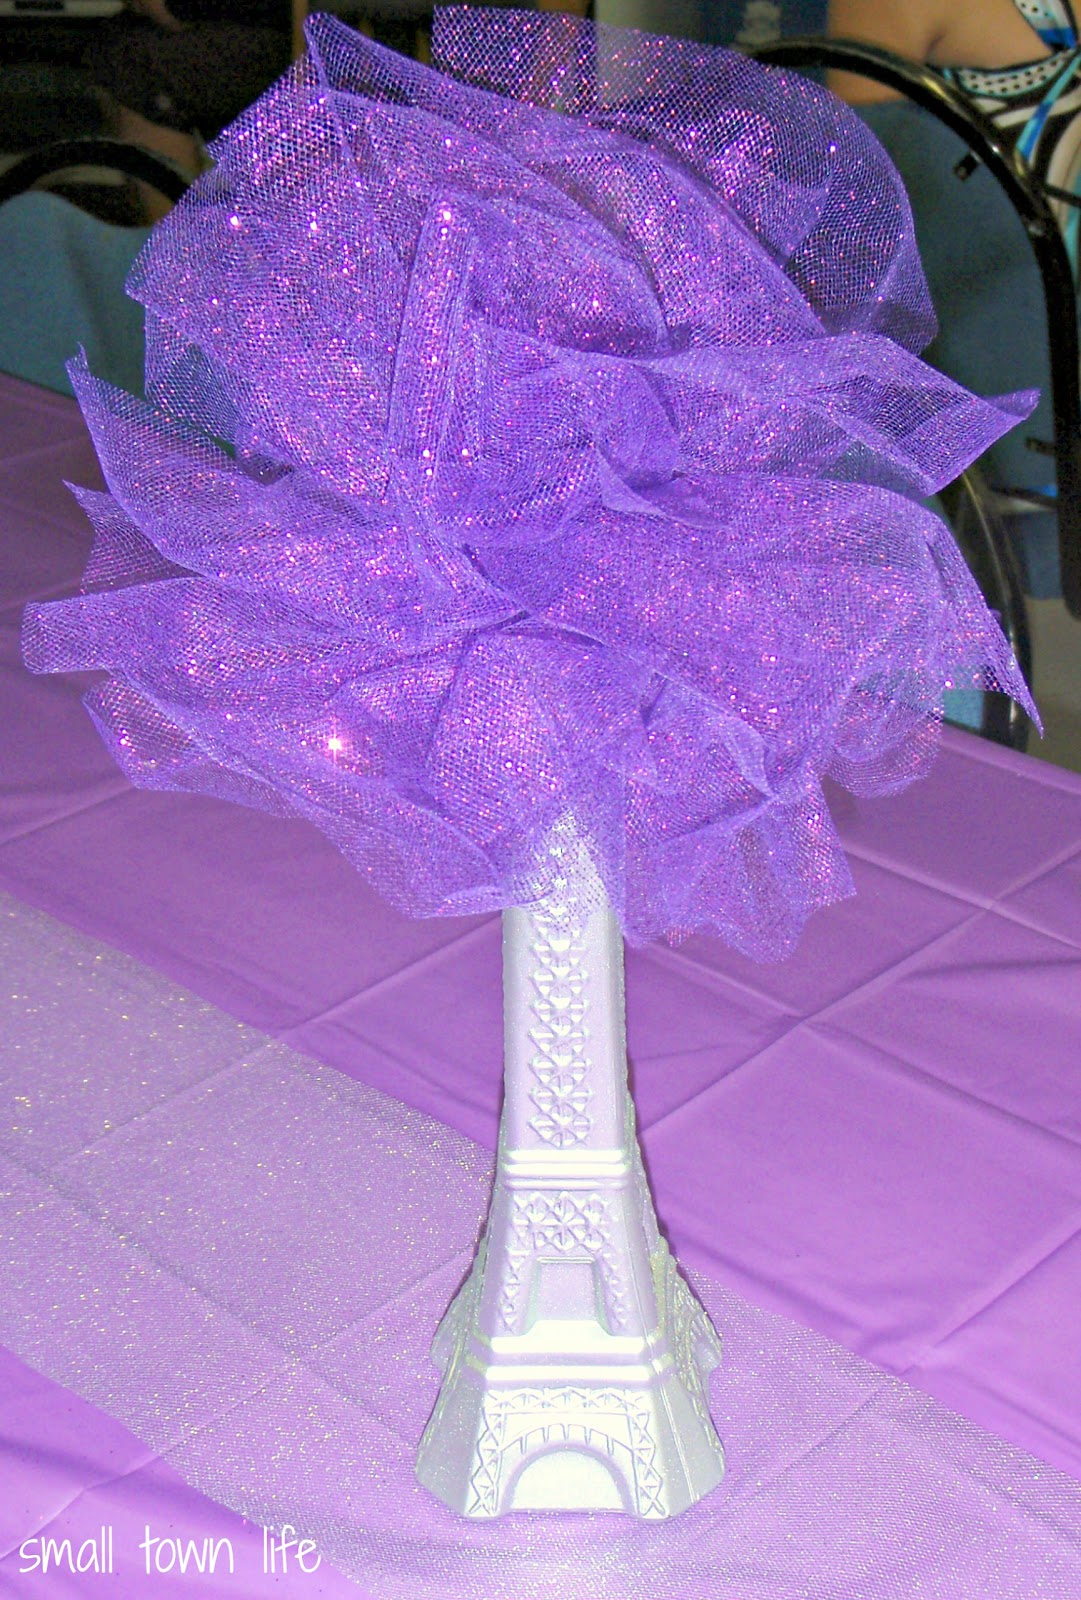 Small Town Life Diy Bridal Shower Centerpieces Eiffel Tower Vases Amp Glitter Tulle Poms